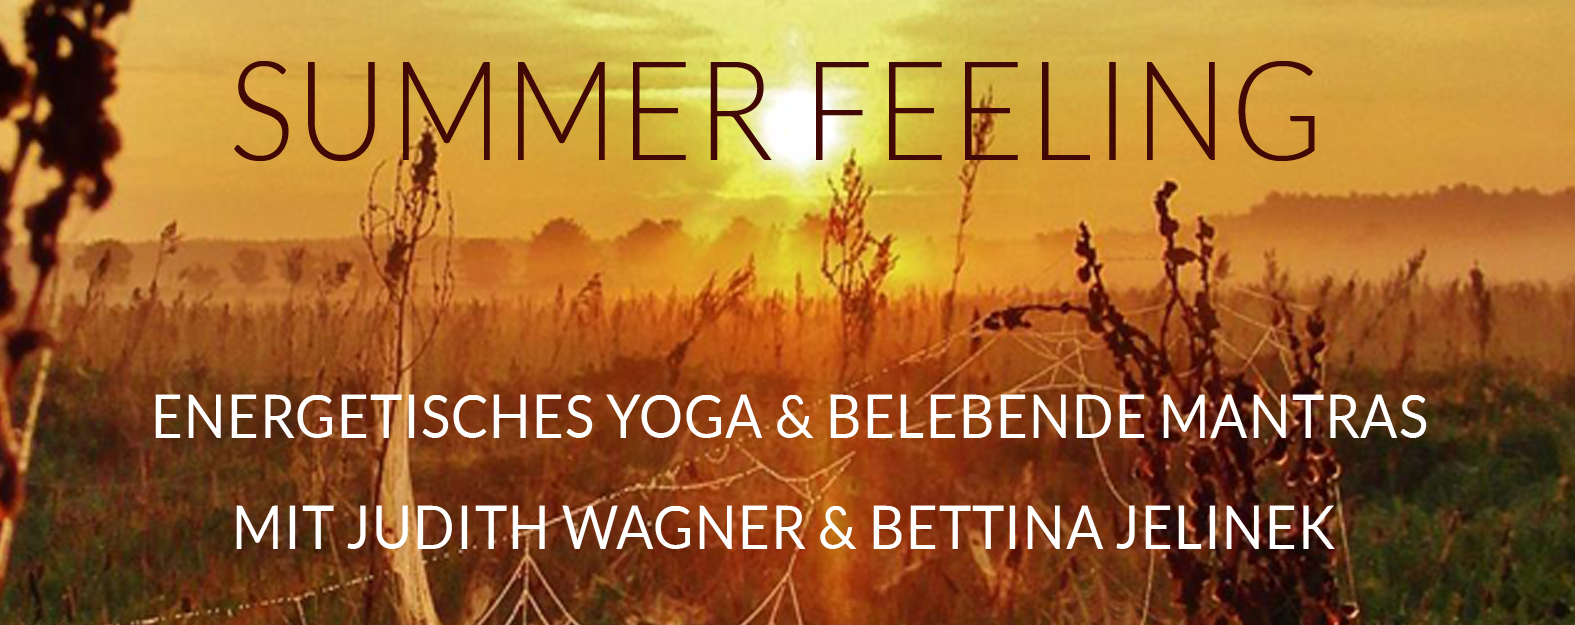 SUMMER FEELING bei presentYOGA